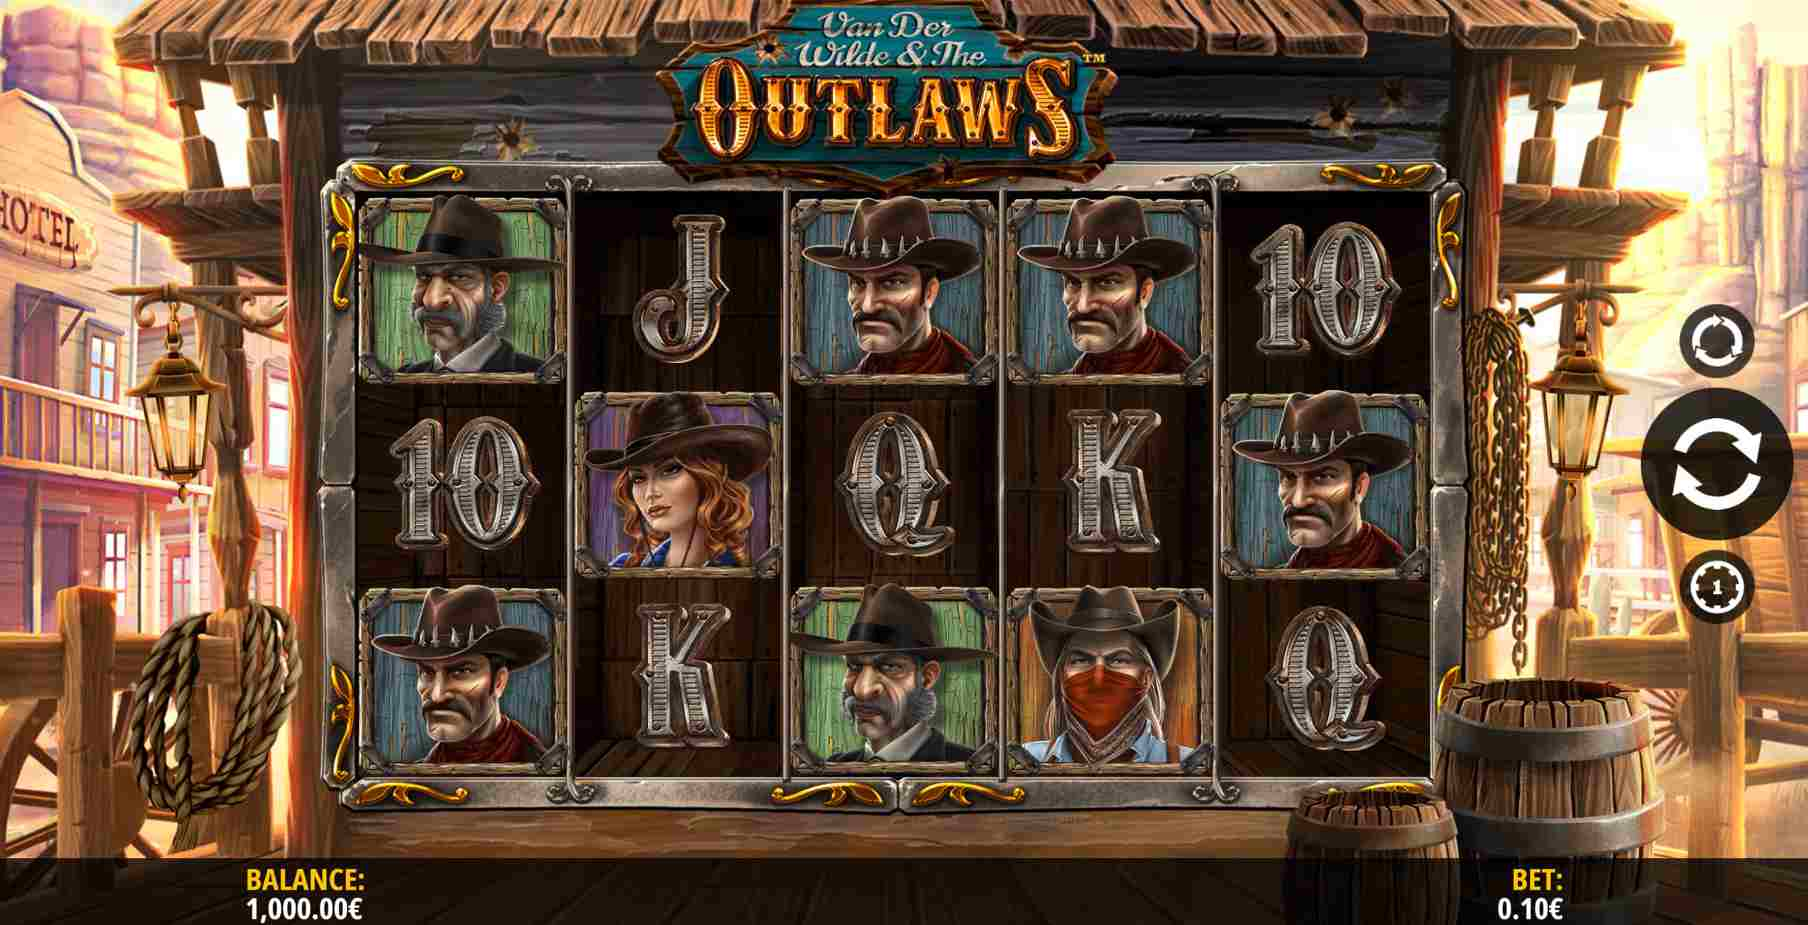 Van der Wilde and The Outlaws Base Game